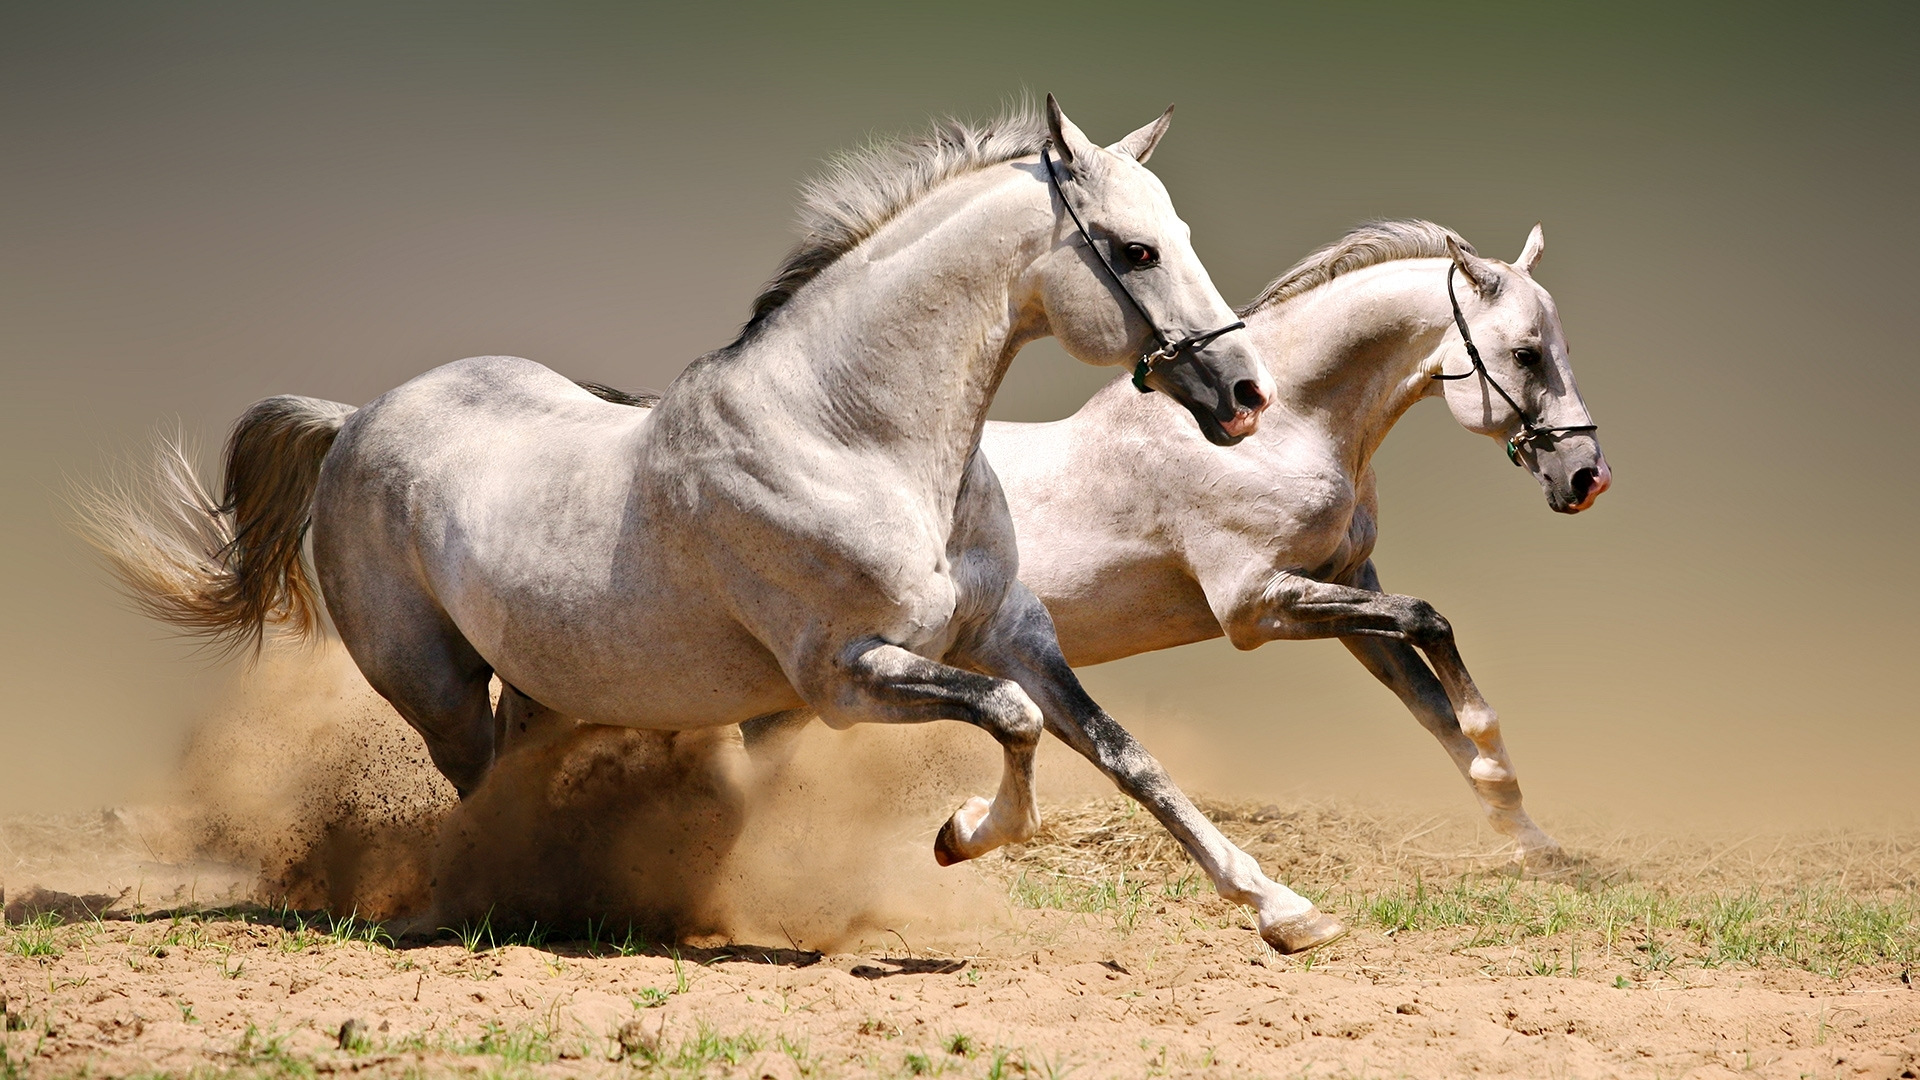 46842 download wallpaper Animals, Horses screensavers and pictures for free